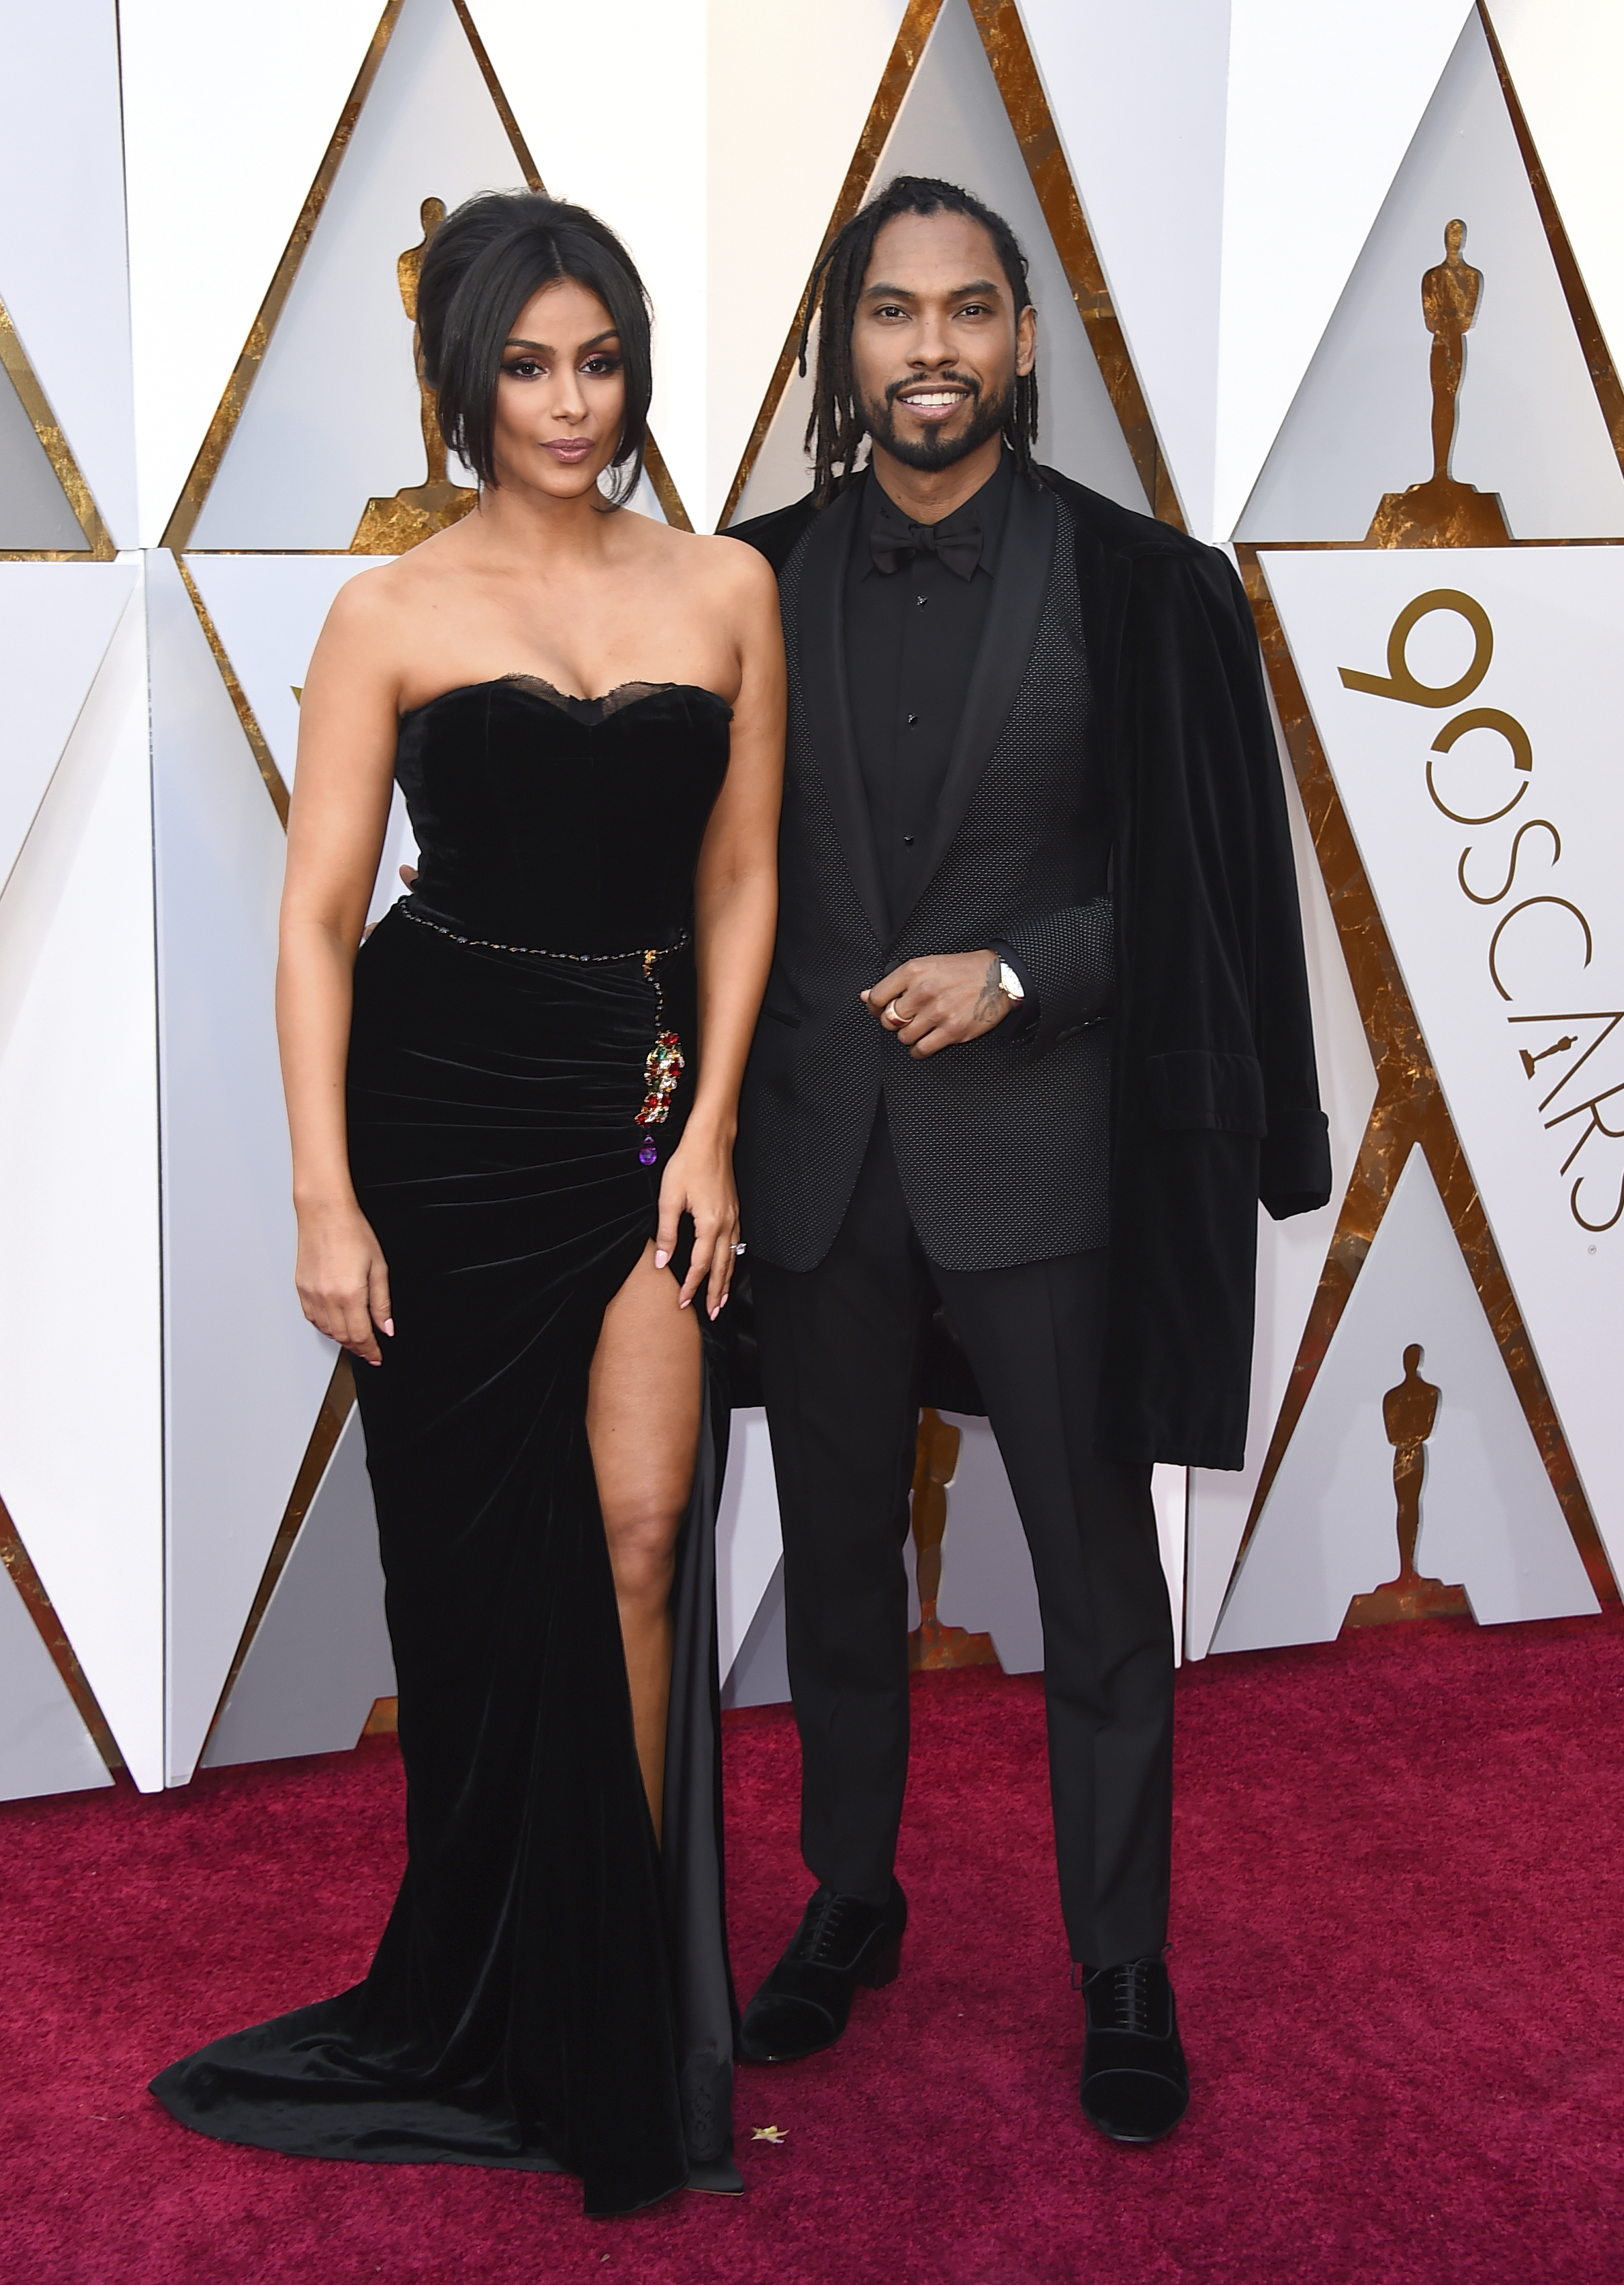 "<div class=""meta image-caption""><div class=""origin-logo origin-image none""><span>none</span></div><span class=""caption-text"">Nazanin Mandi, left, and Miguel arrive at the Oscars on Sunday, March 4, 2018, at the Dolby Theatre in Los Angeles. (Jordan Strauss/Invision/AP)</span></div>"